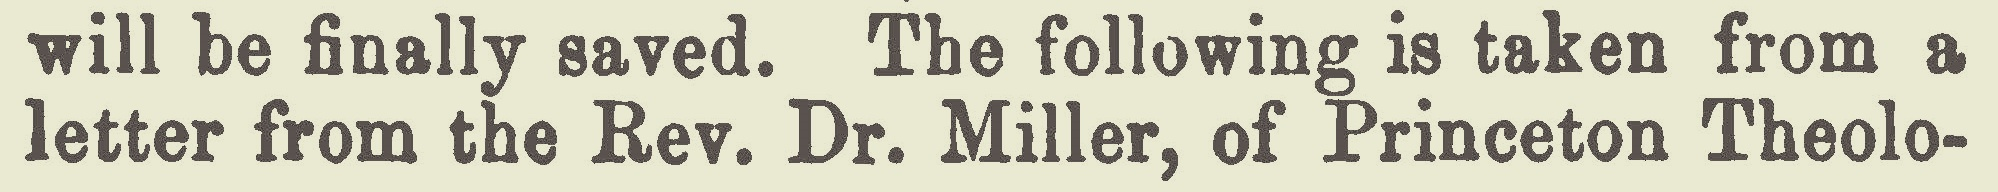 Miller, Samuel, February 9, 1836 Letter on the Doctrine of the Atonement Title Page.jpg